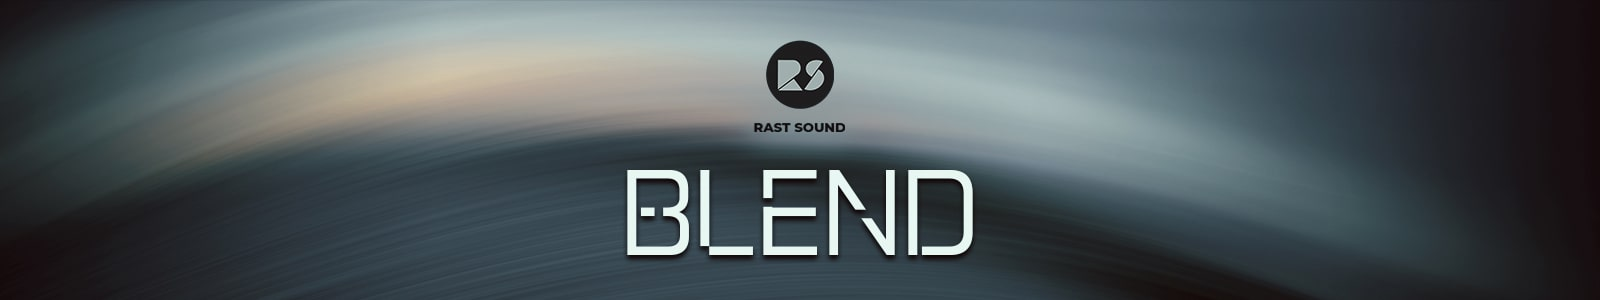 blend by rast sound